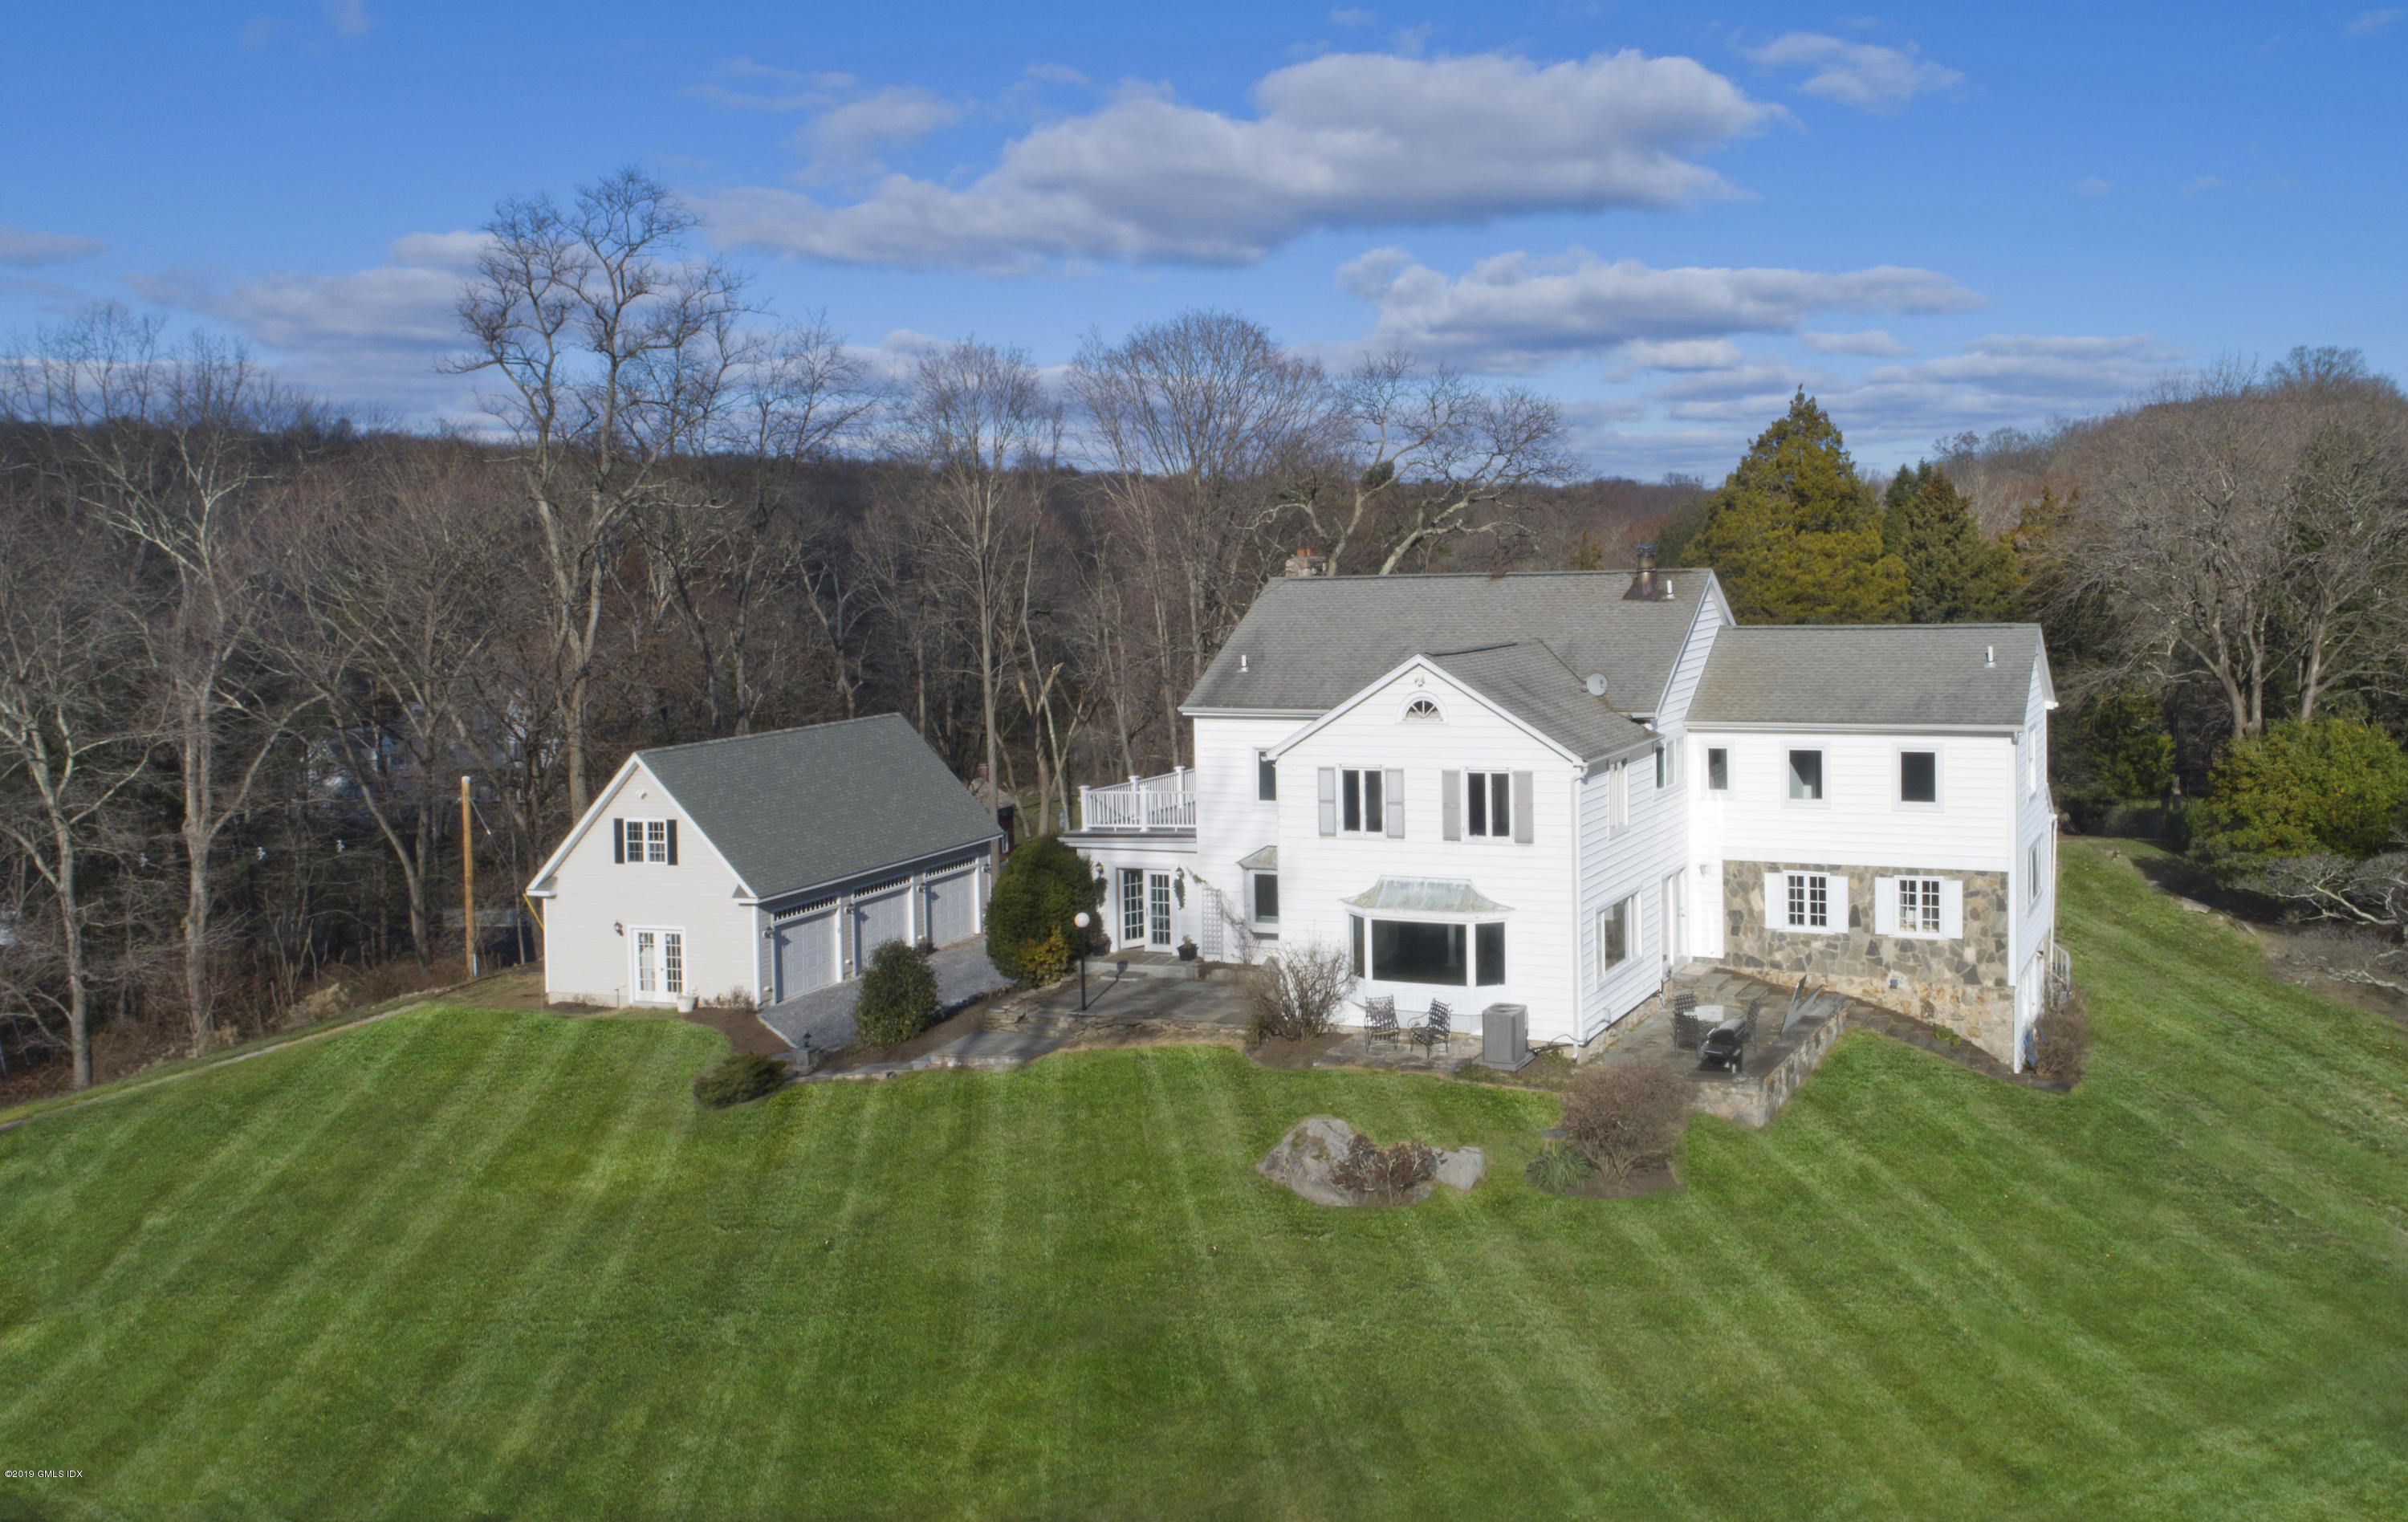 100 Cat Rock Road,Cos Cob,Connecticut 06807,5 Bedrooms Bedrooms,4 BathroomsBathrooms,Single family,Cat Rock,108074